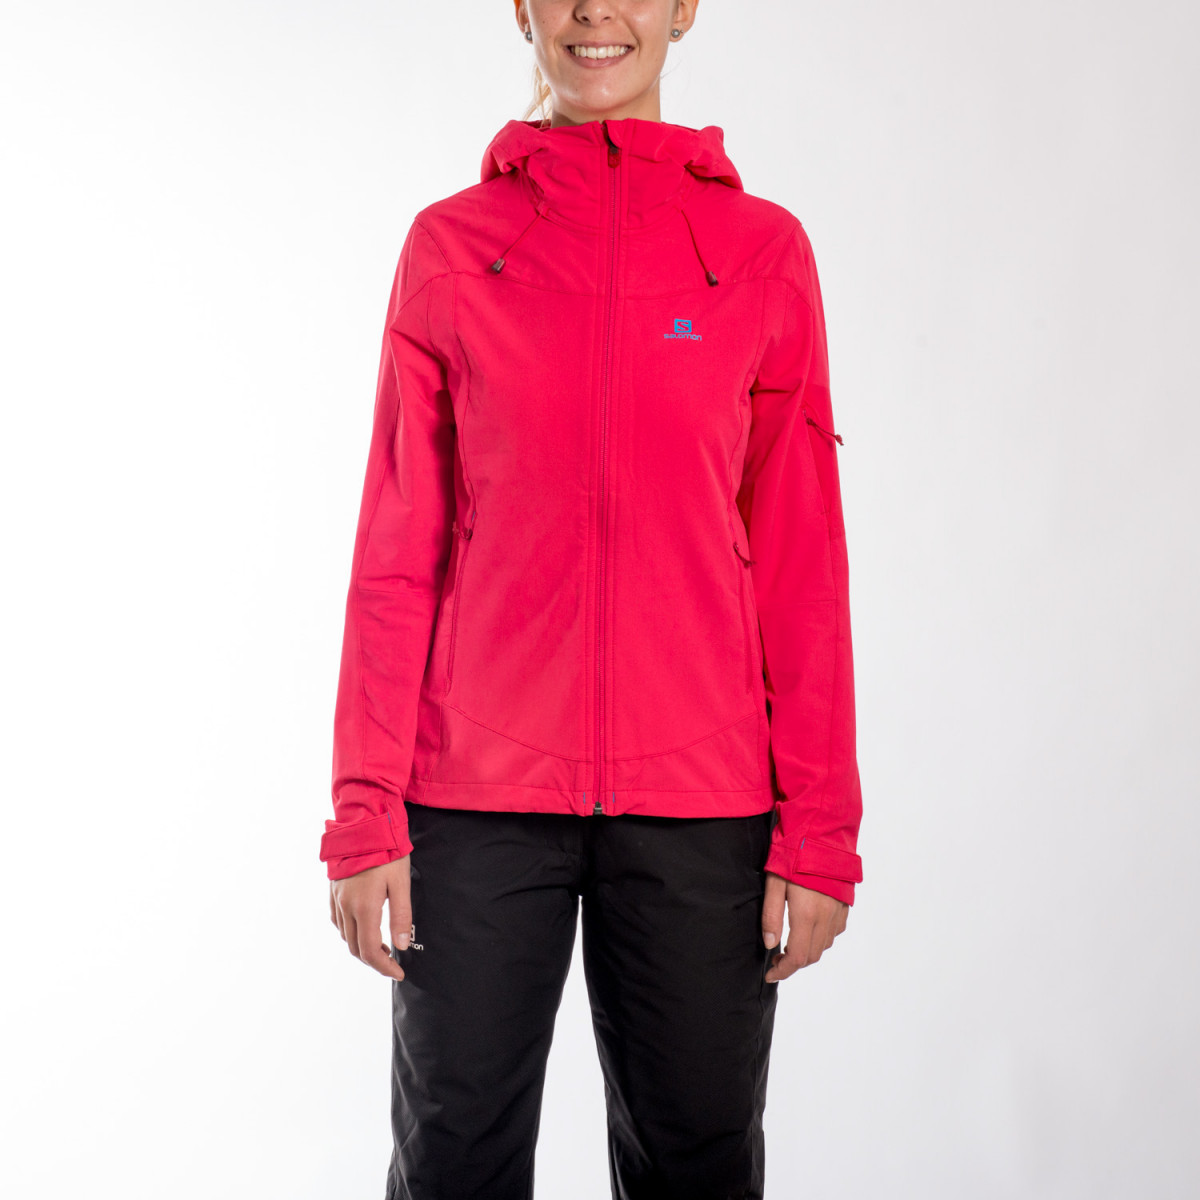 CAMPERA SALOMON RANGER